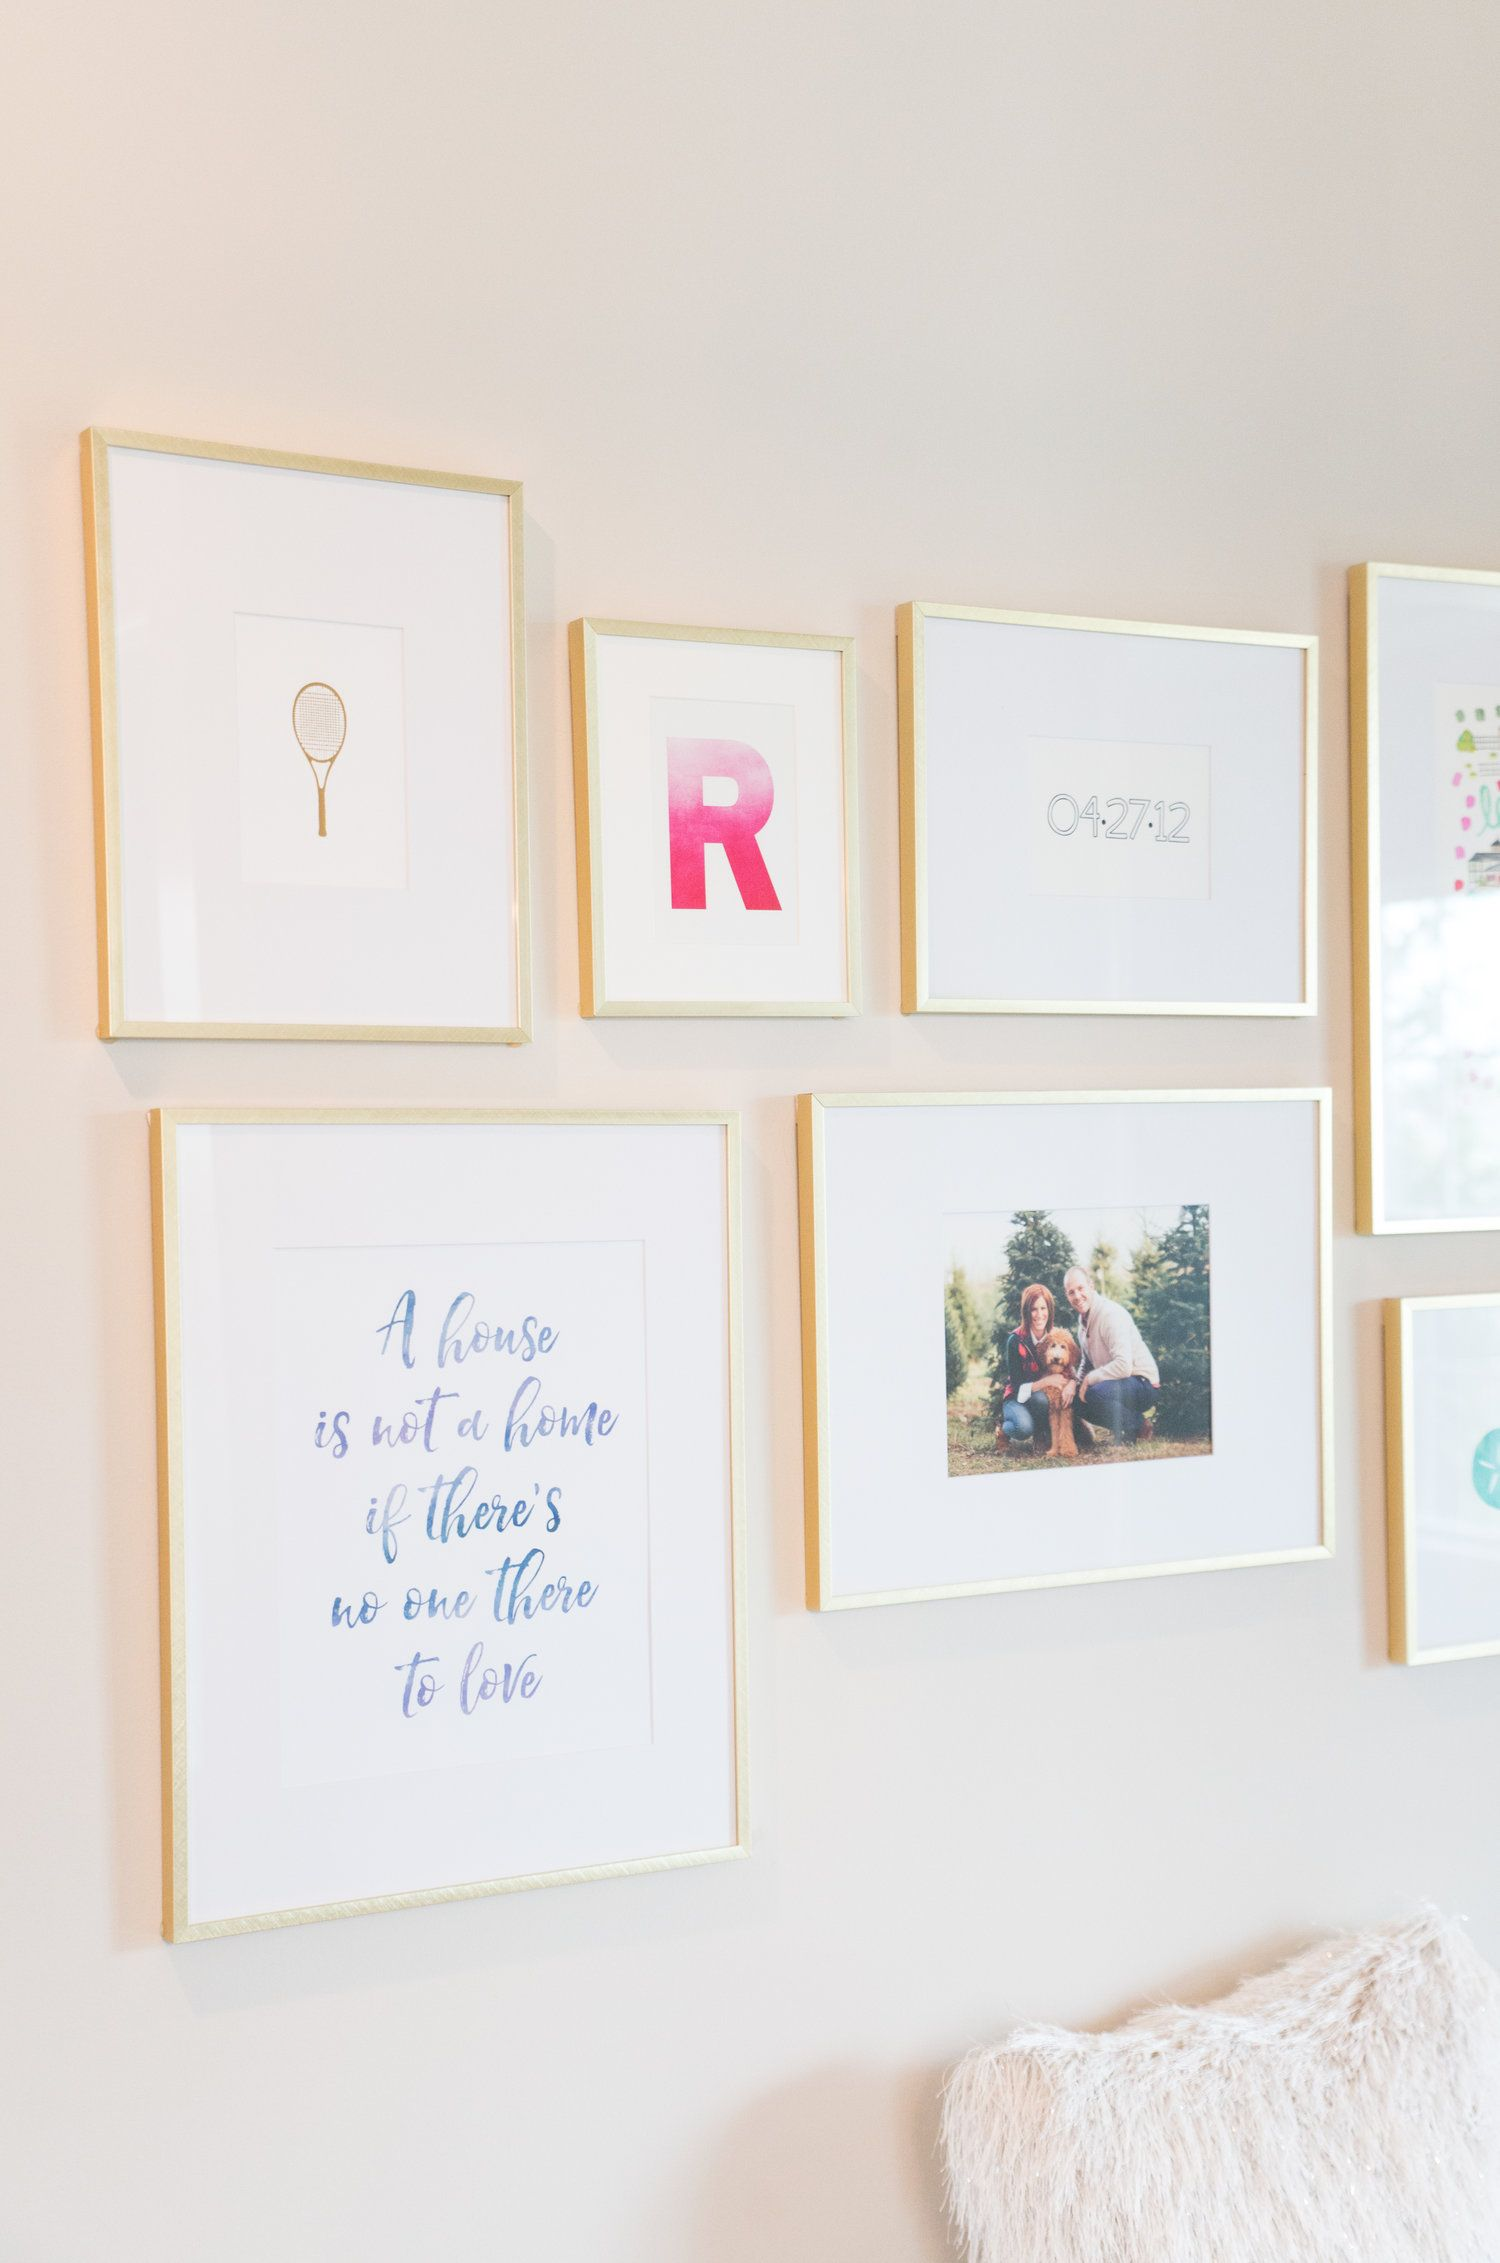 Creating An Intentional Gallery Wall Gallery Wall Small Gallery